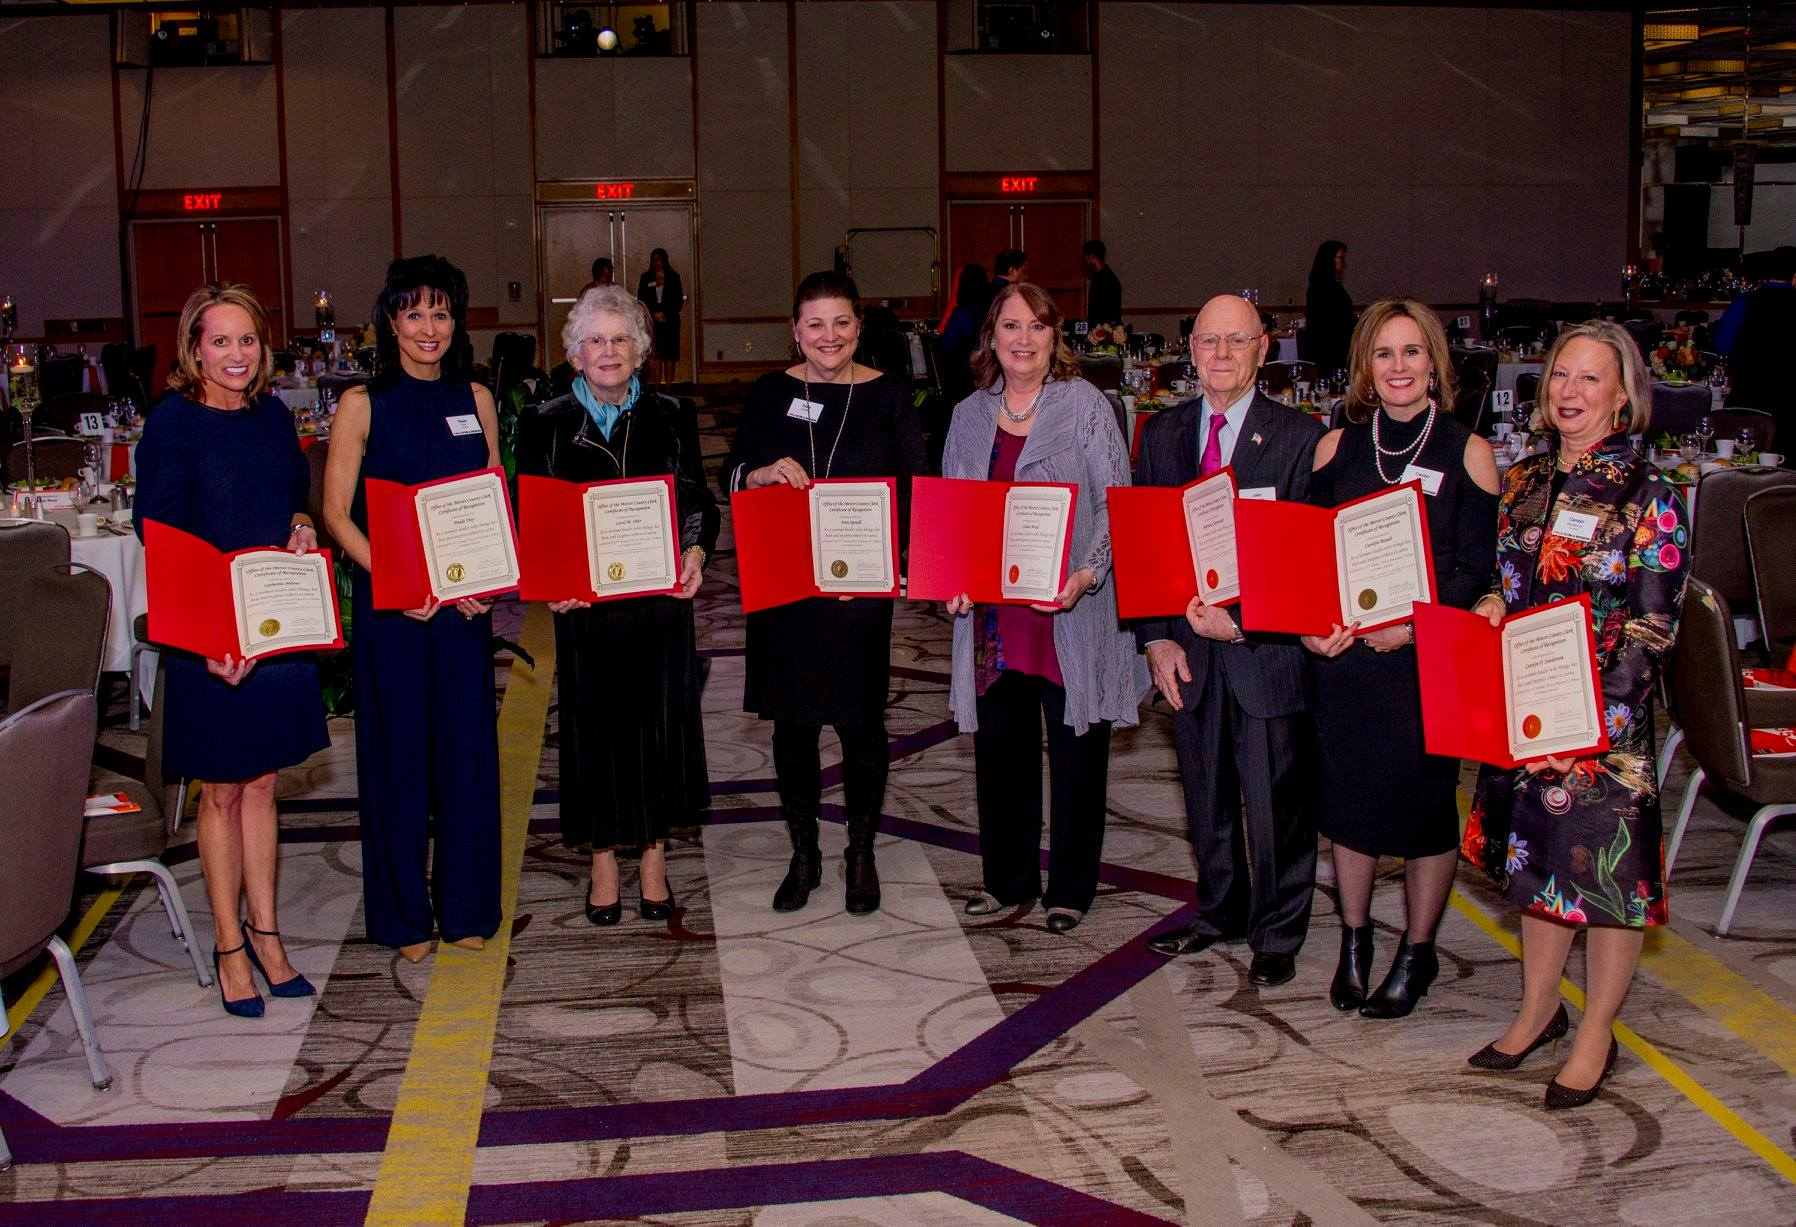 2018 Honorees of the Tribute to Women Awards